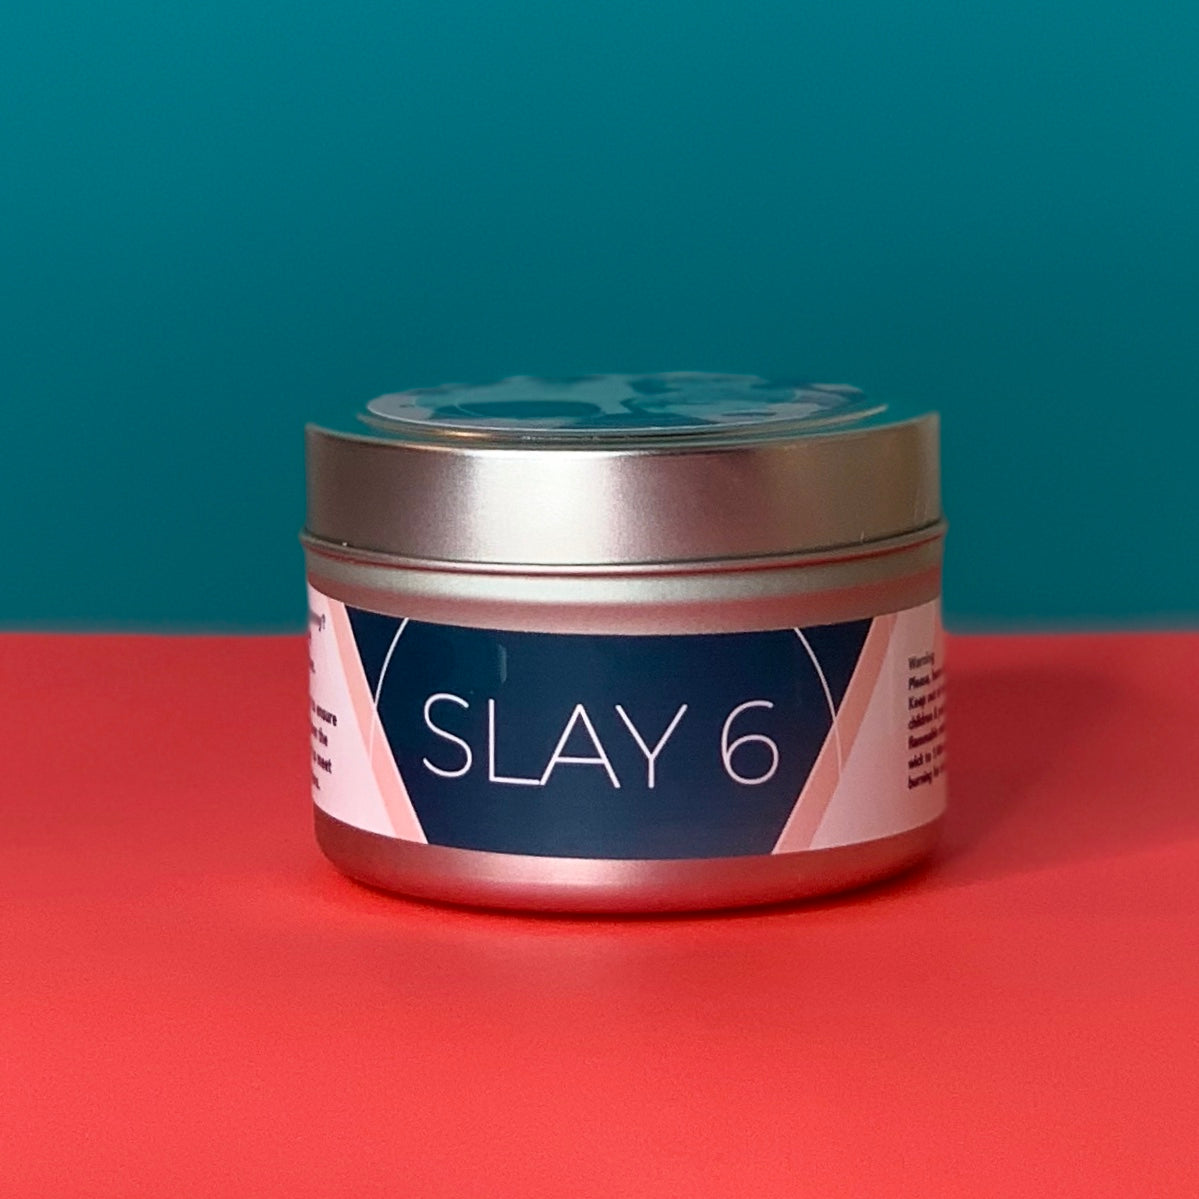 Day6 Kpop Candle / Hazelnut Coffee / Slay 6